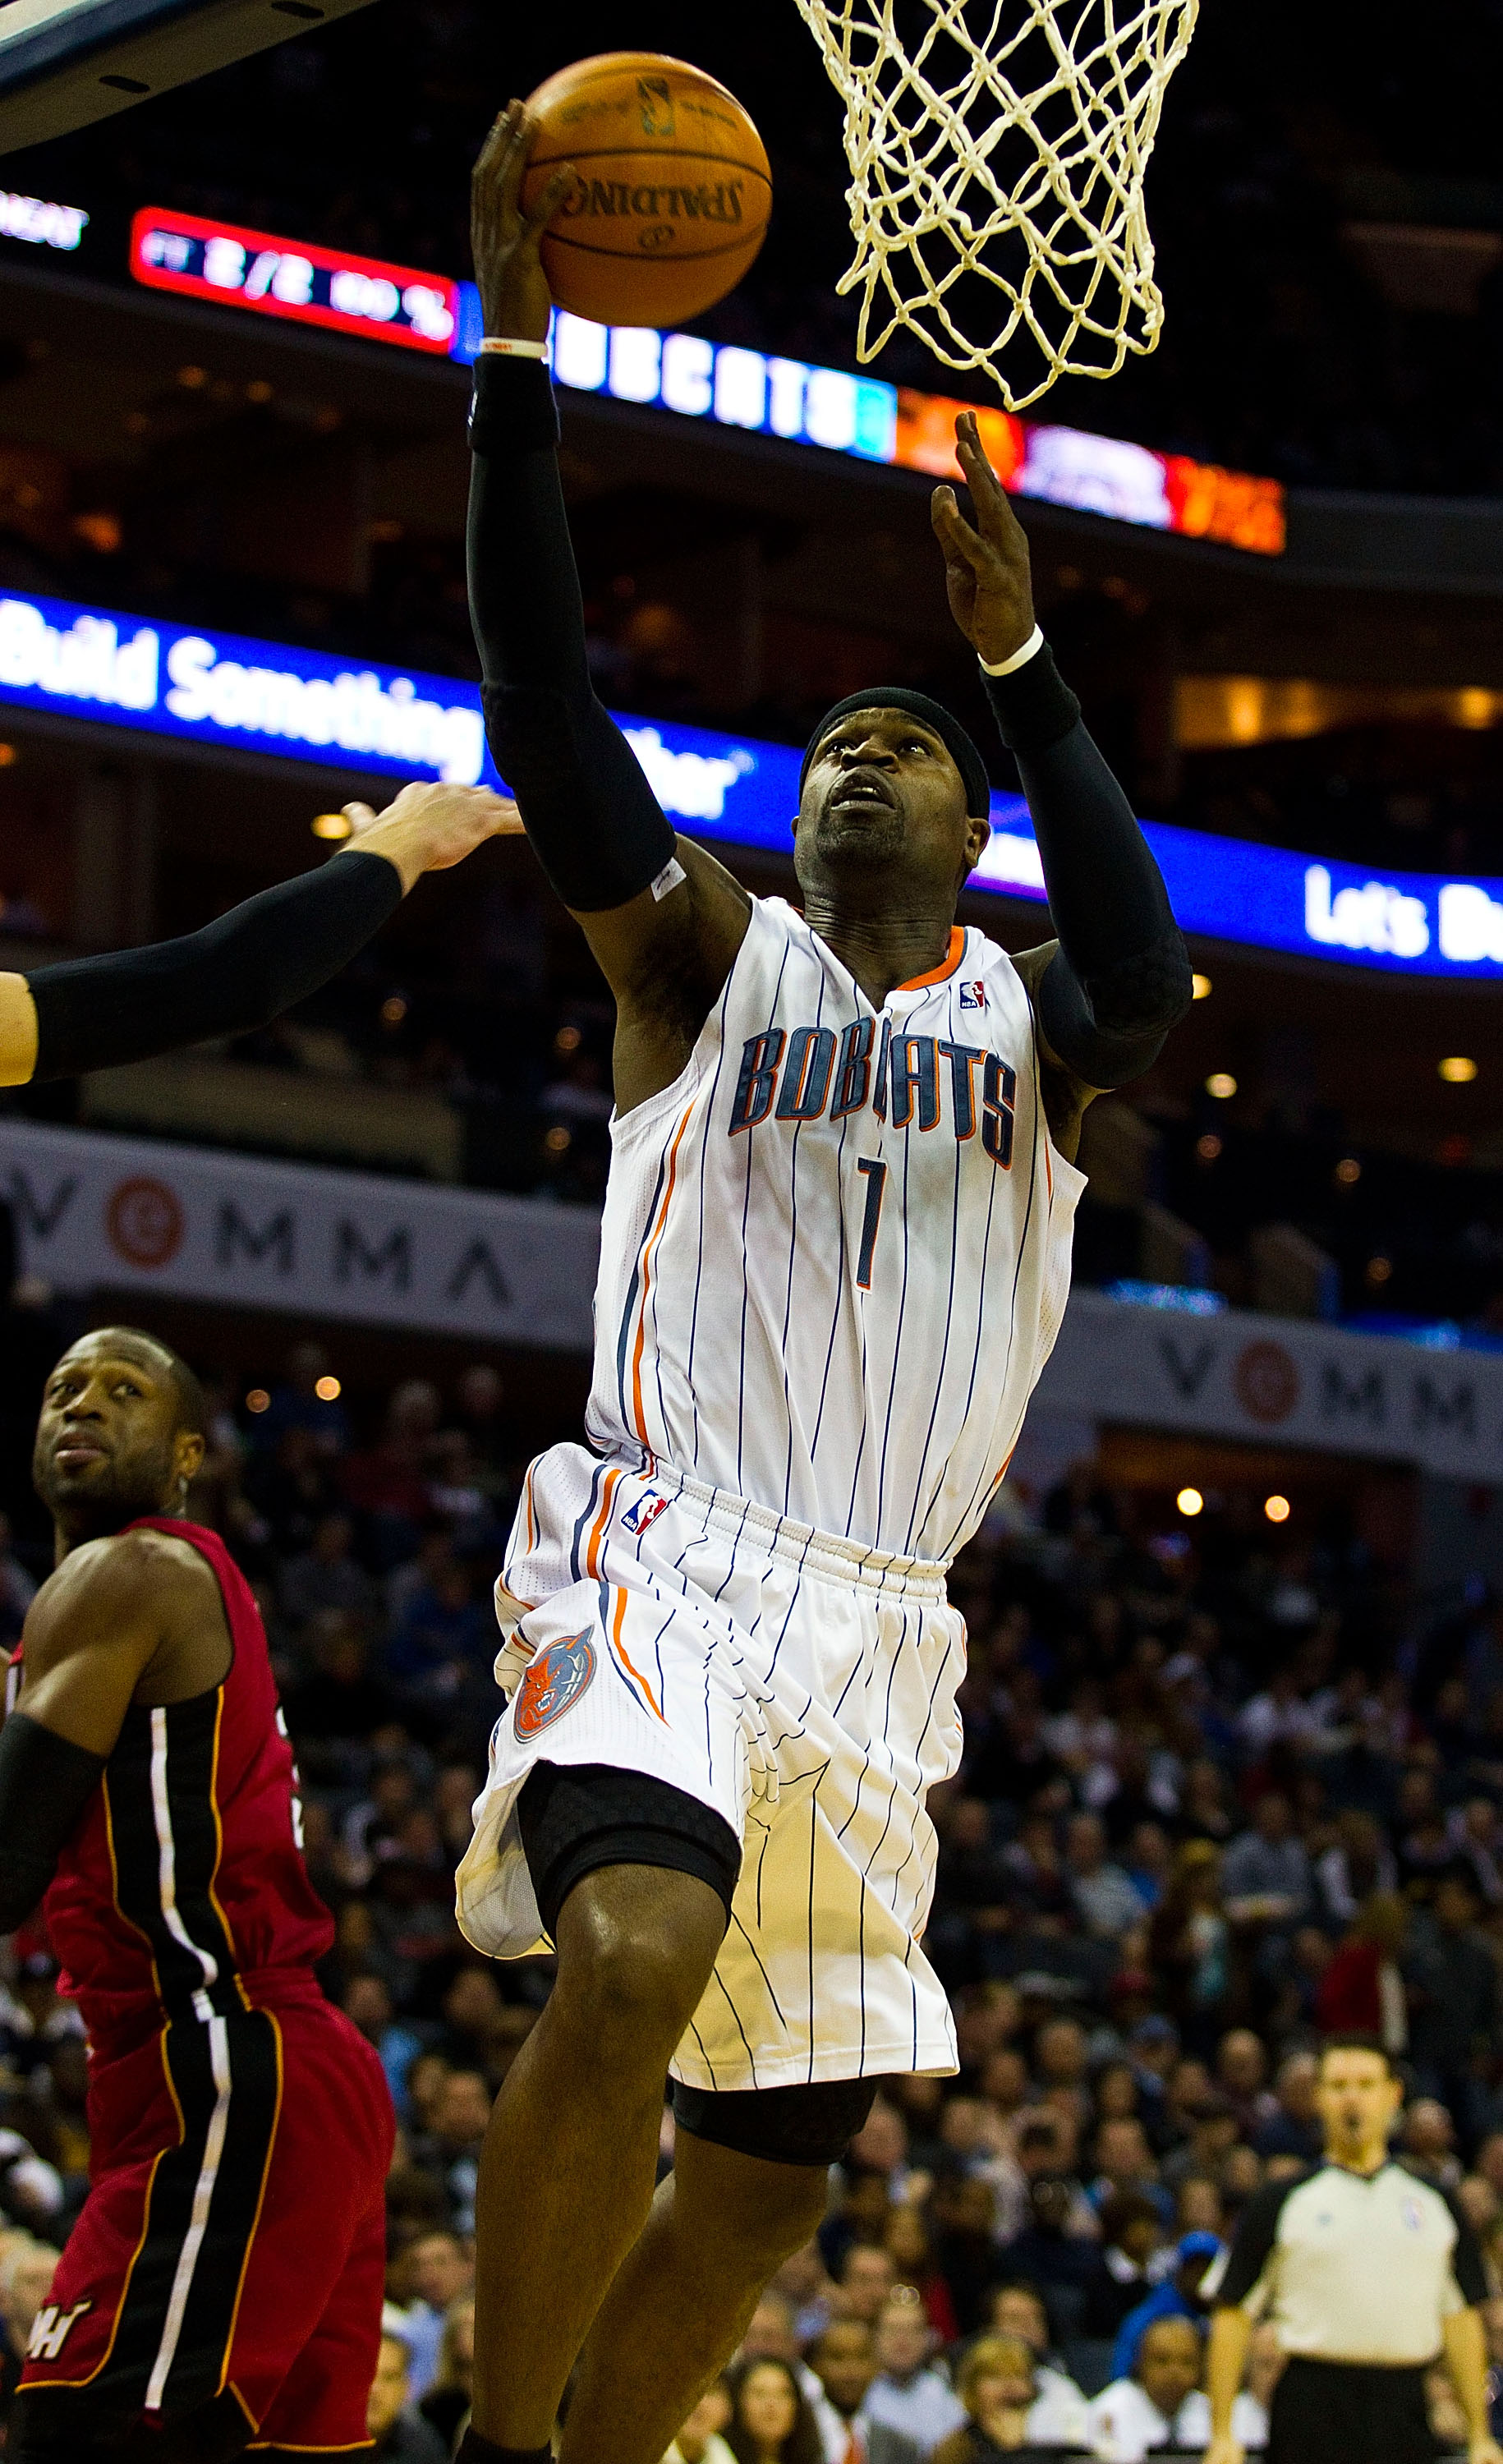 CHARLOTTE, NC - JANUARY 03: Stephen Jackson #1 of the Charlotte Bobcats drives to the basket against the Miami Heat at Time Warner Cable Arena on January 3, 2011 in Charlotte, North Carolina.  The Heat defeated the Bobcats 96-82.  (Photo by Brian A. Weste